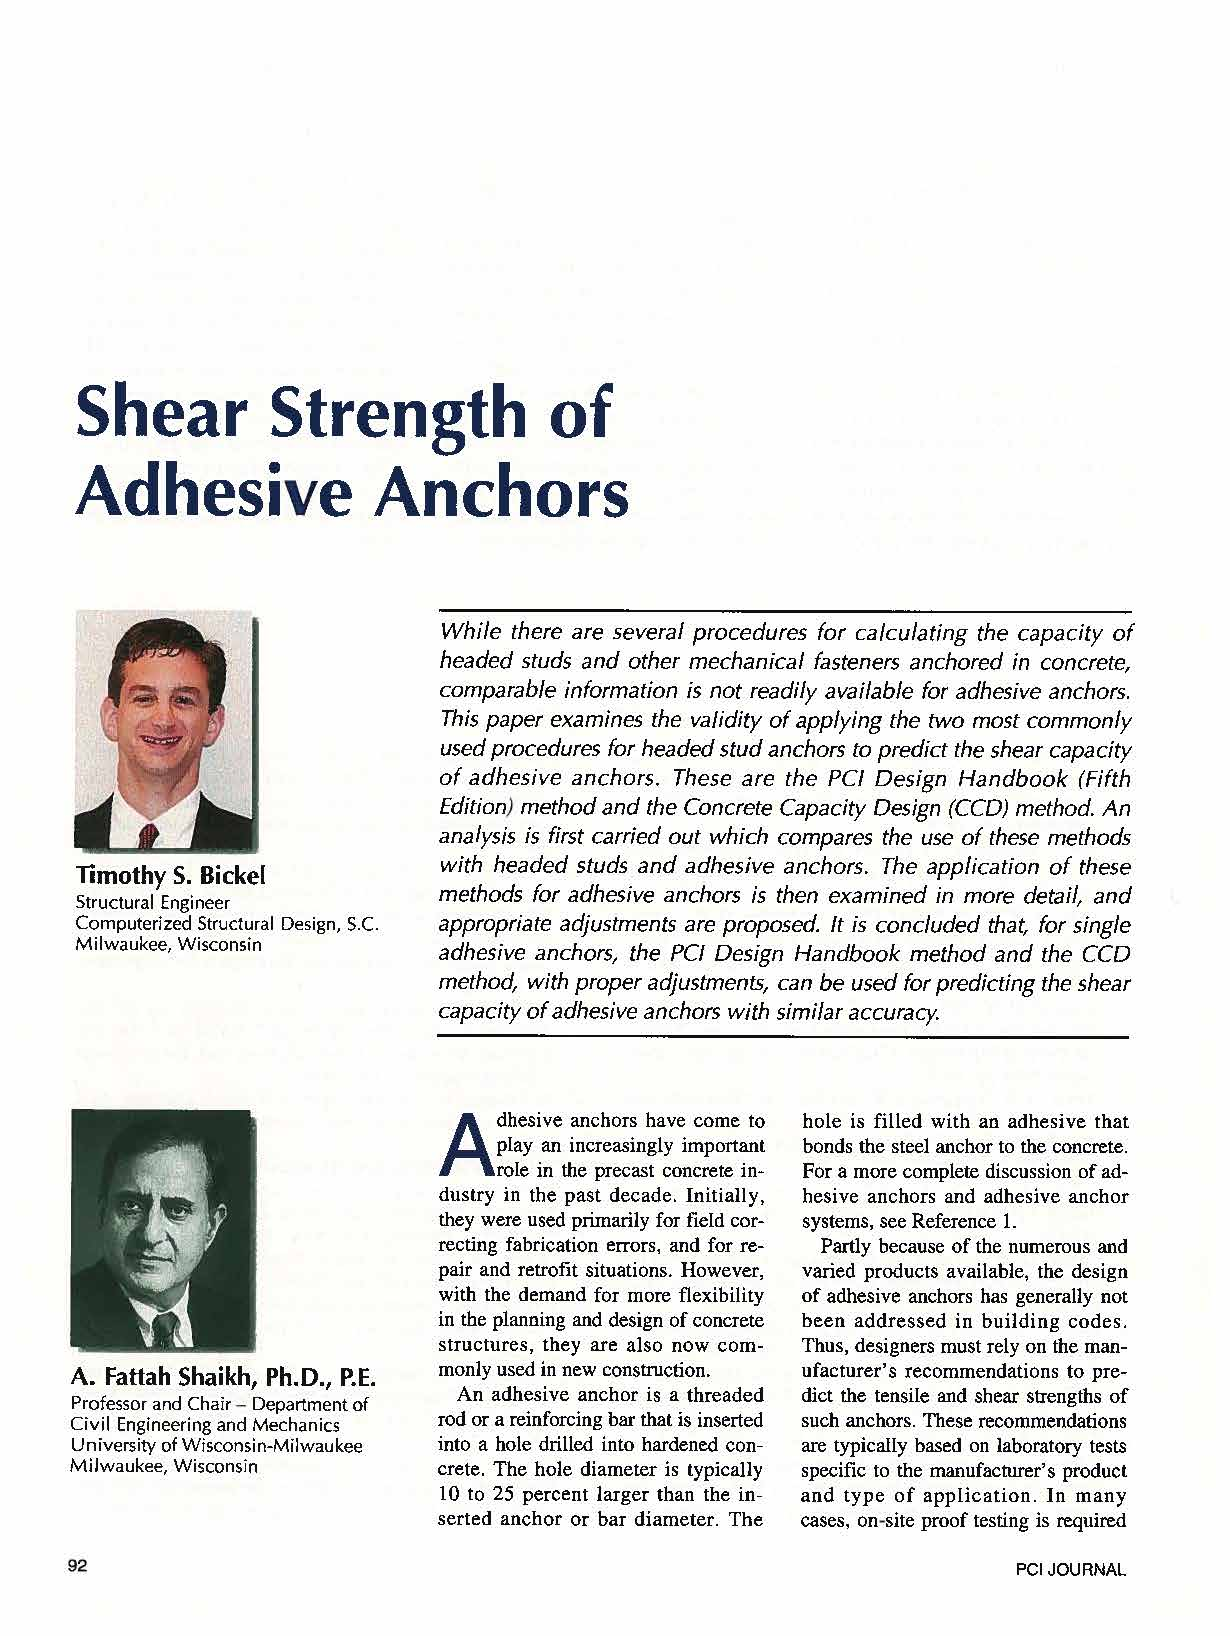 Shear Strength of Adhesive Anchors | Publication by Tim Bickle | CSD Structural Engineers